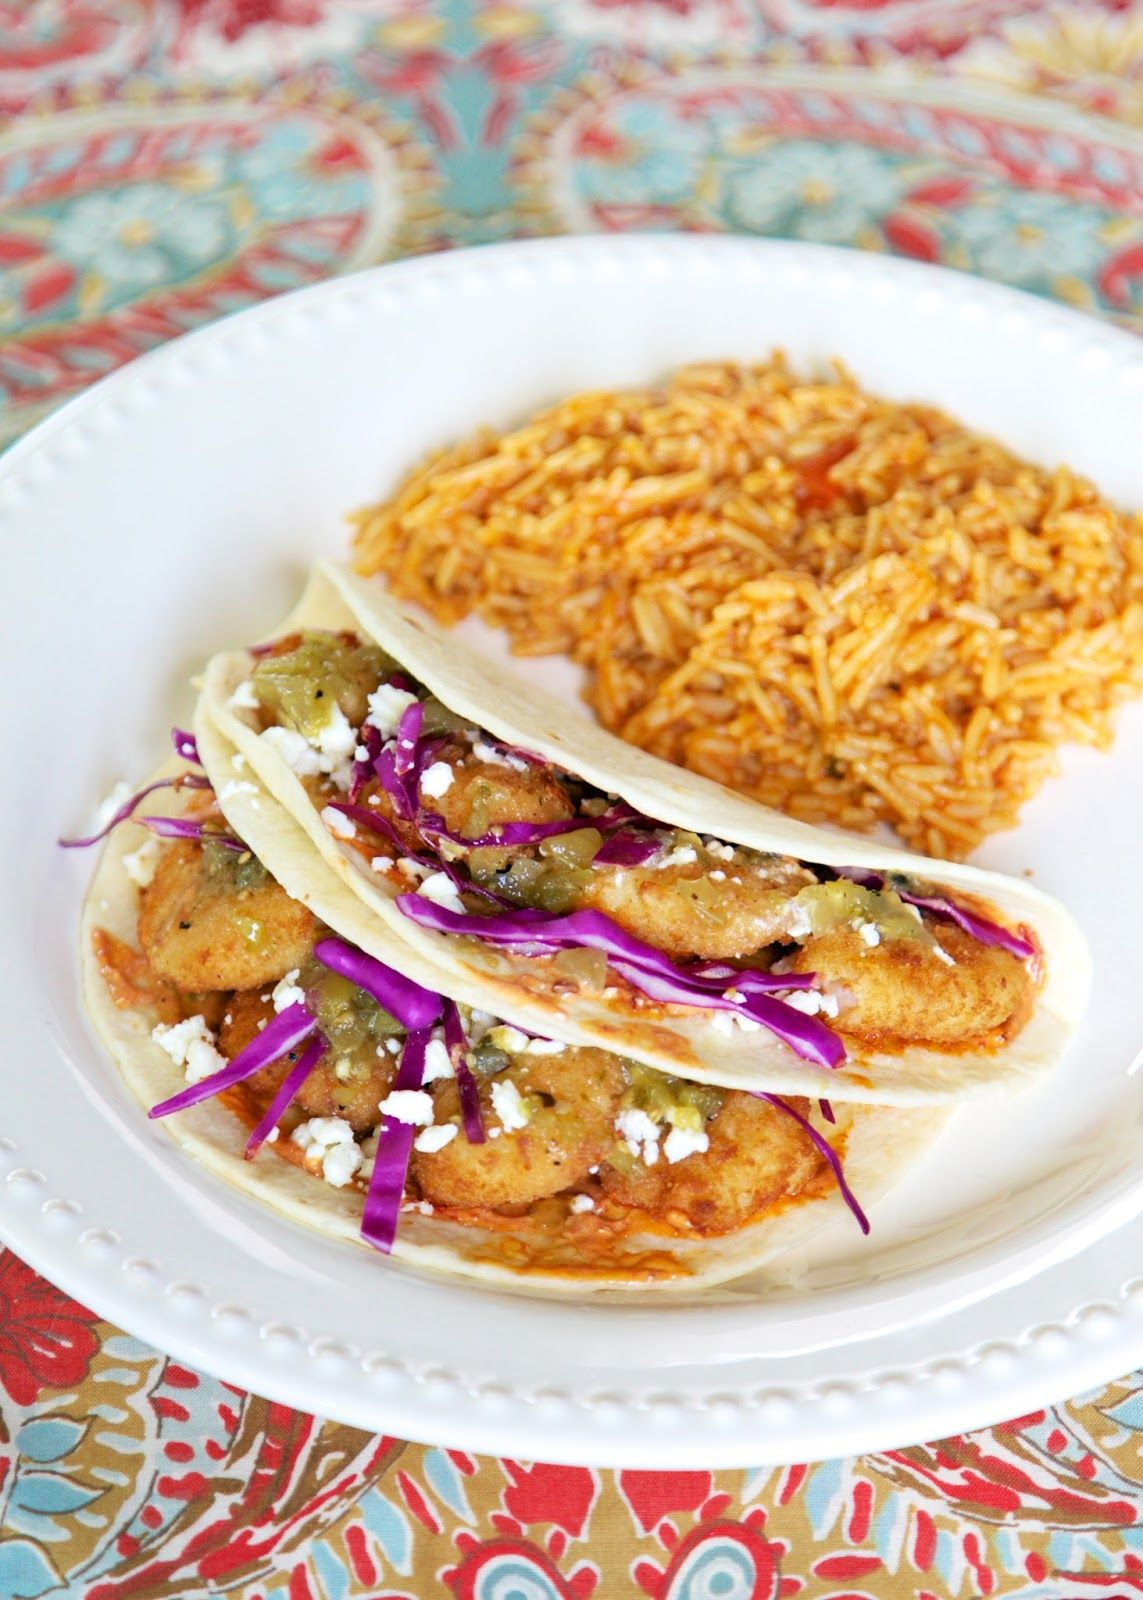 Chipotle Shrimp Tacos - from Disney's Epcot Food and Wine Festival Cookbook